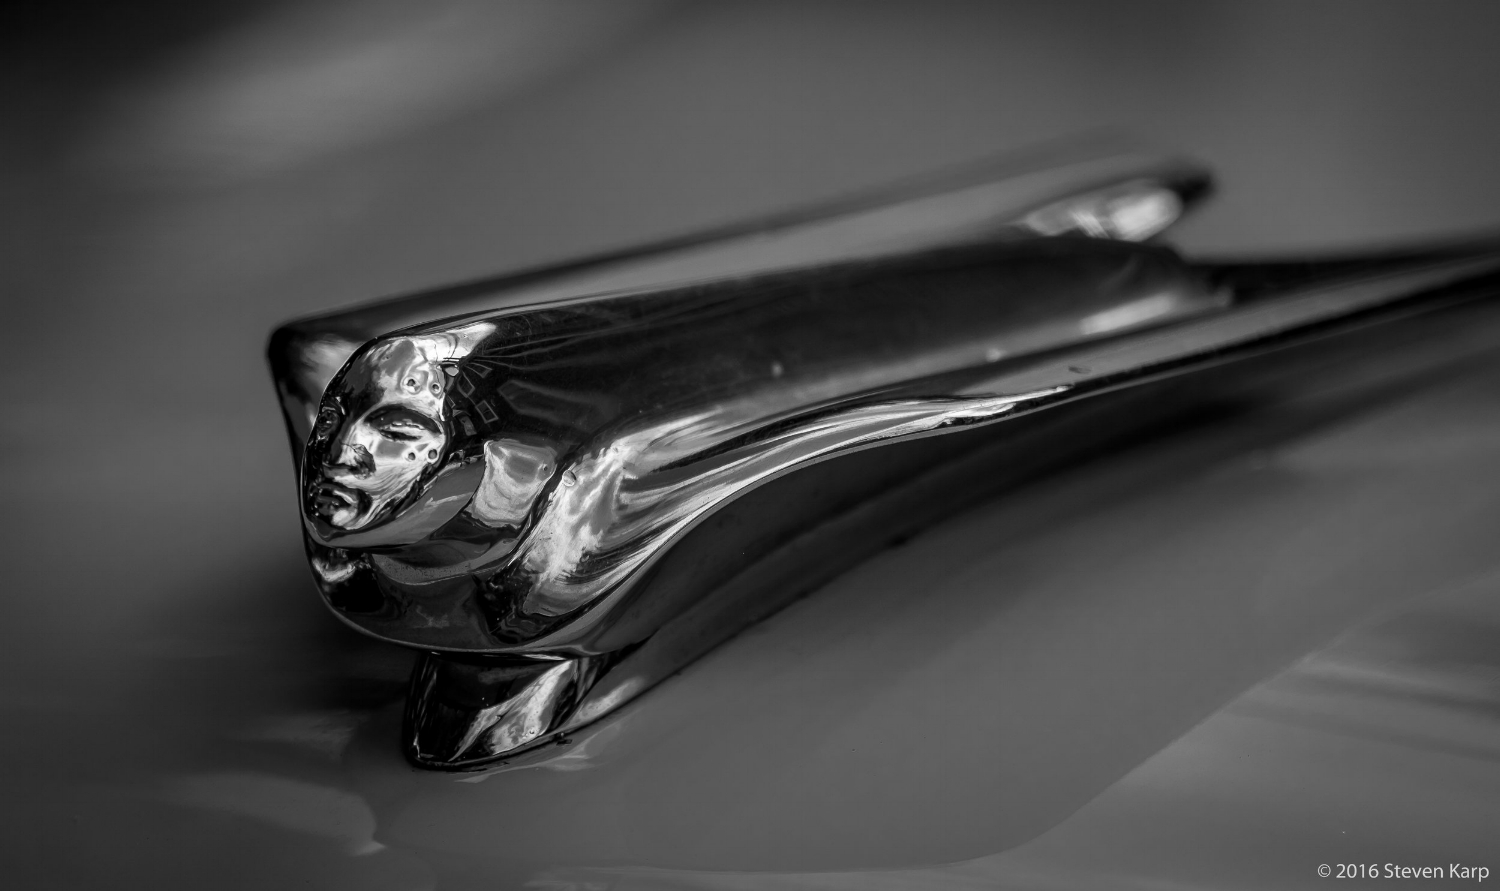 1953 Cadillac Hood Ornament